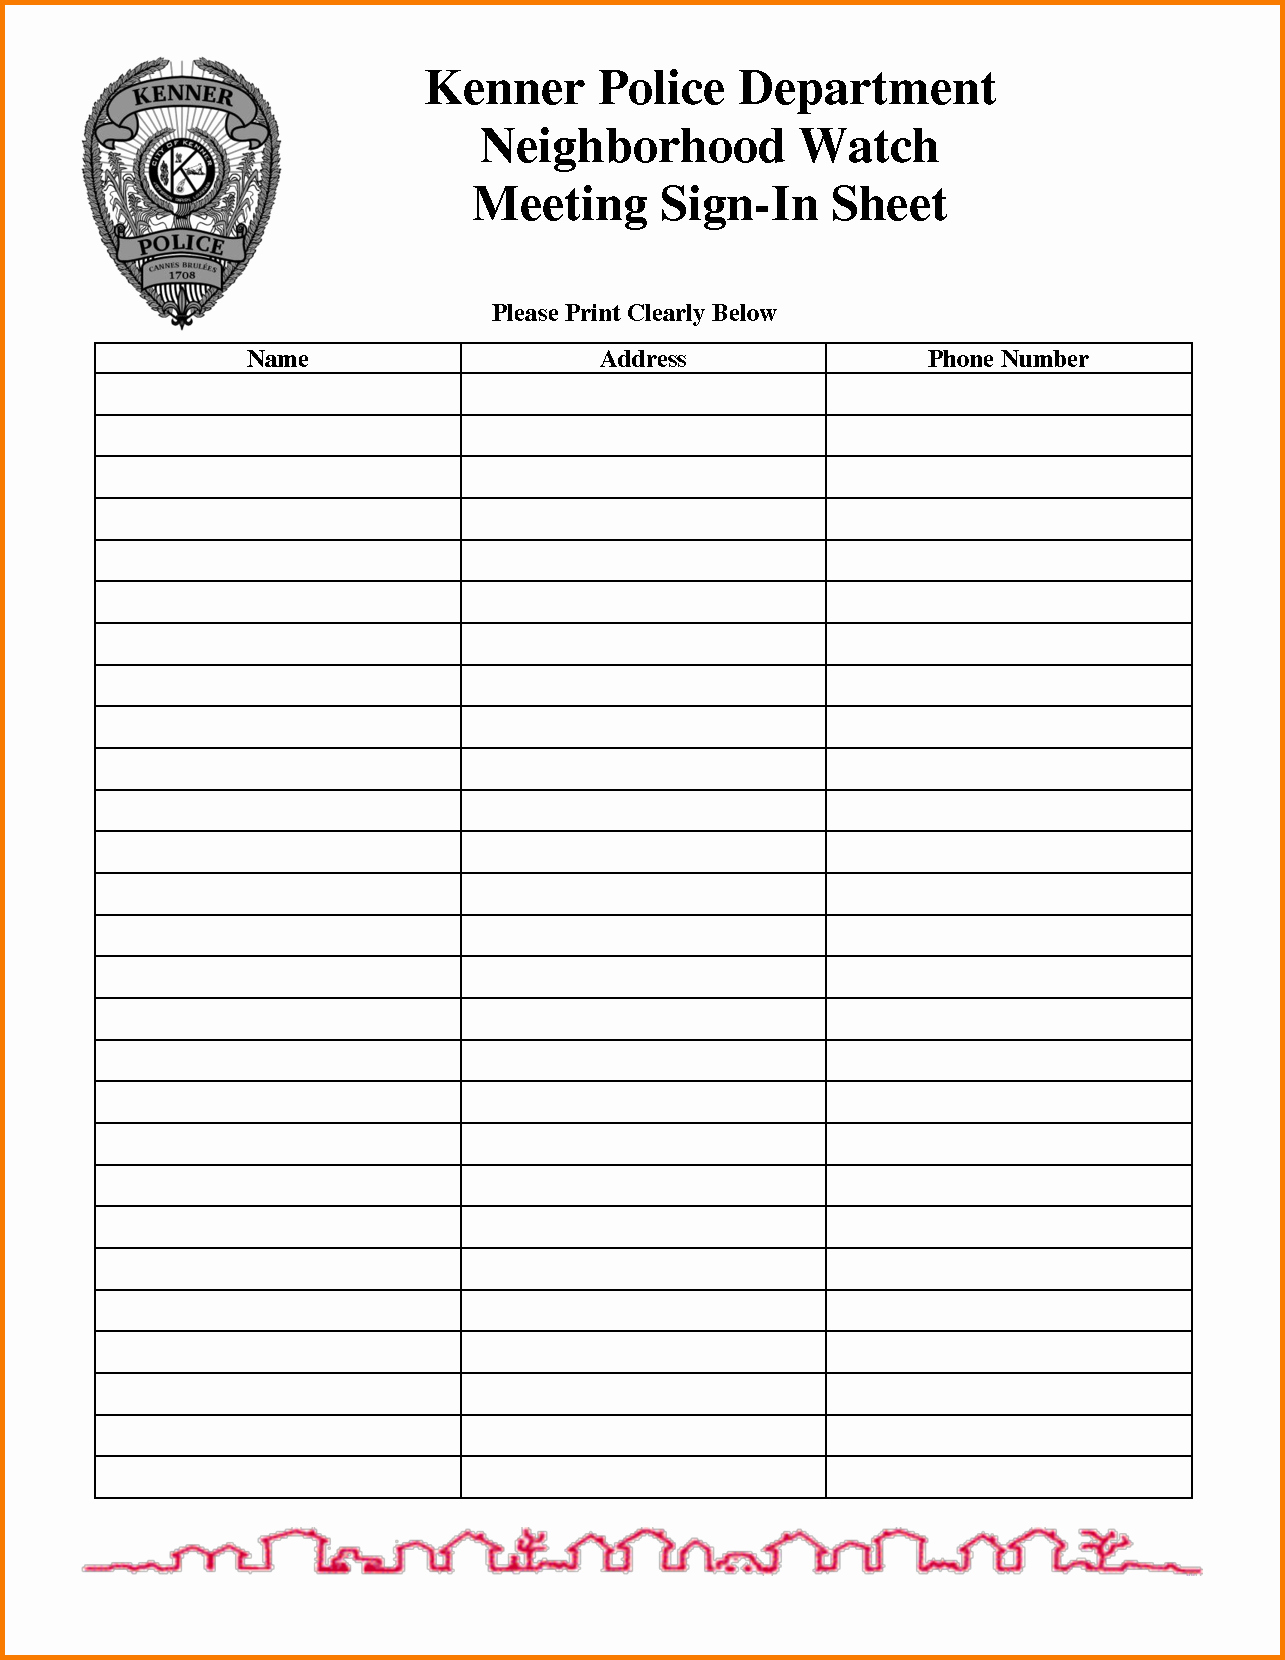 Meeting Sign Up Sheet Template Beautiful Meeting Sign In Sheet